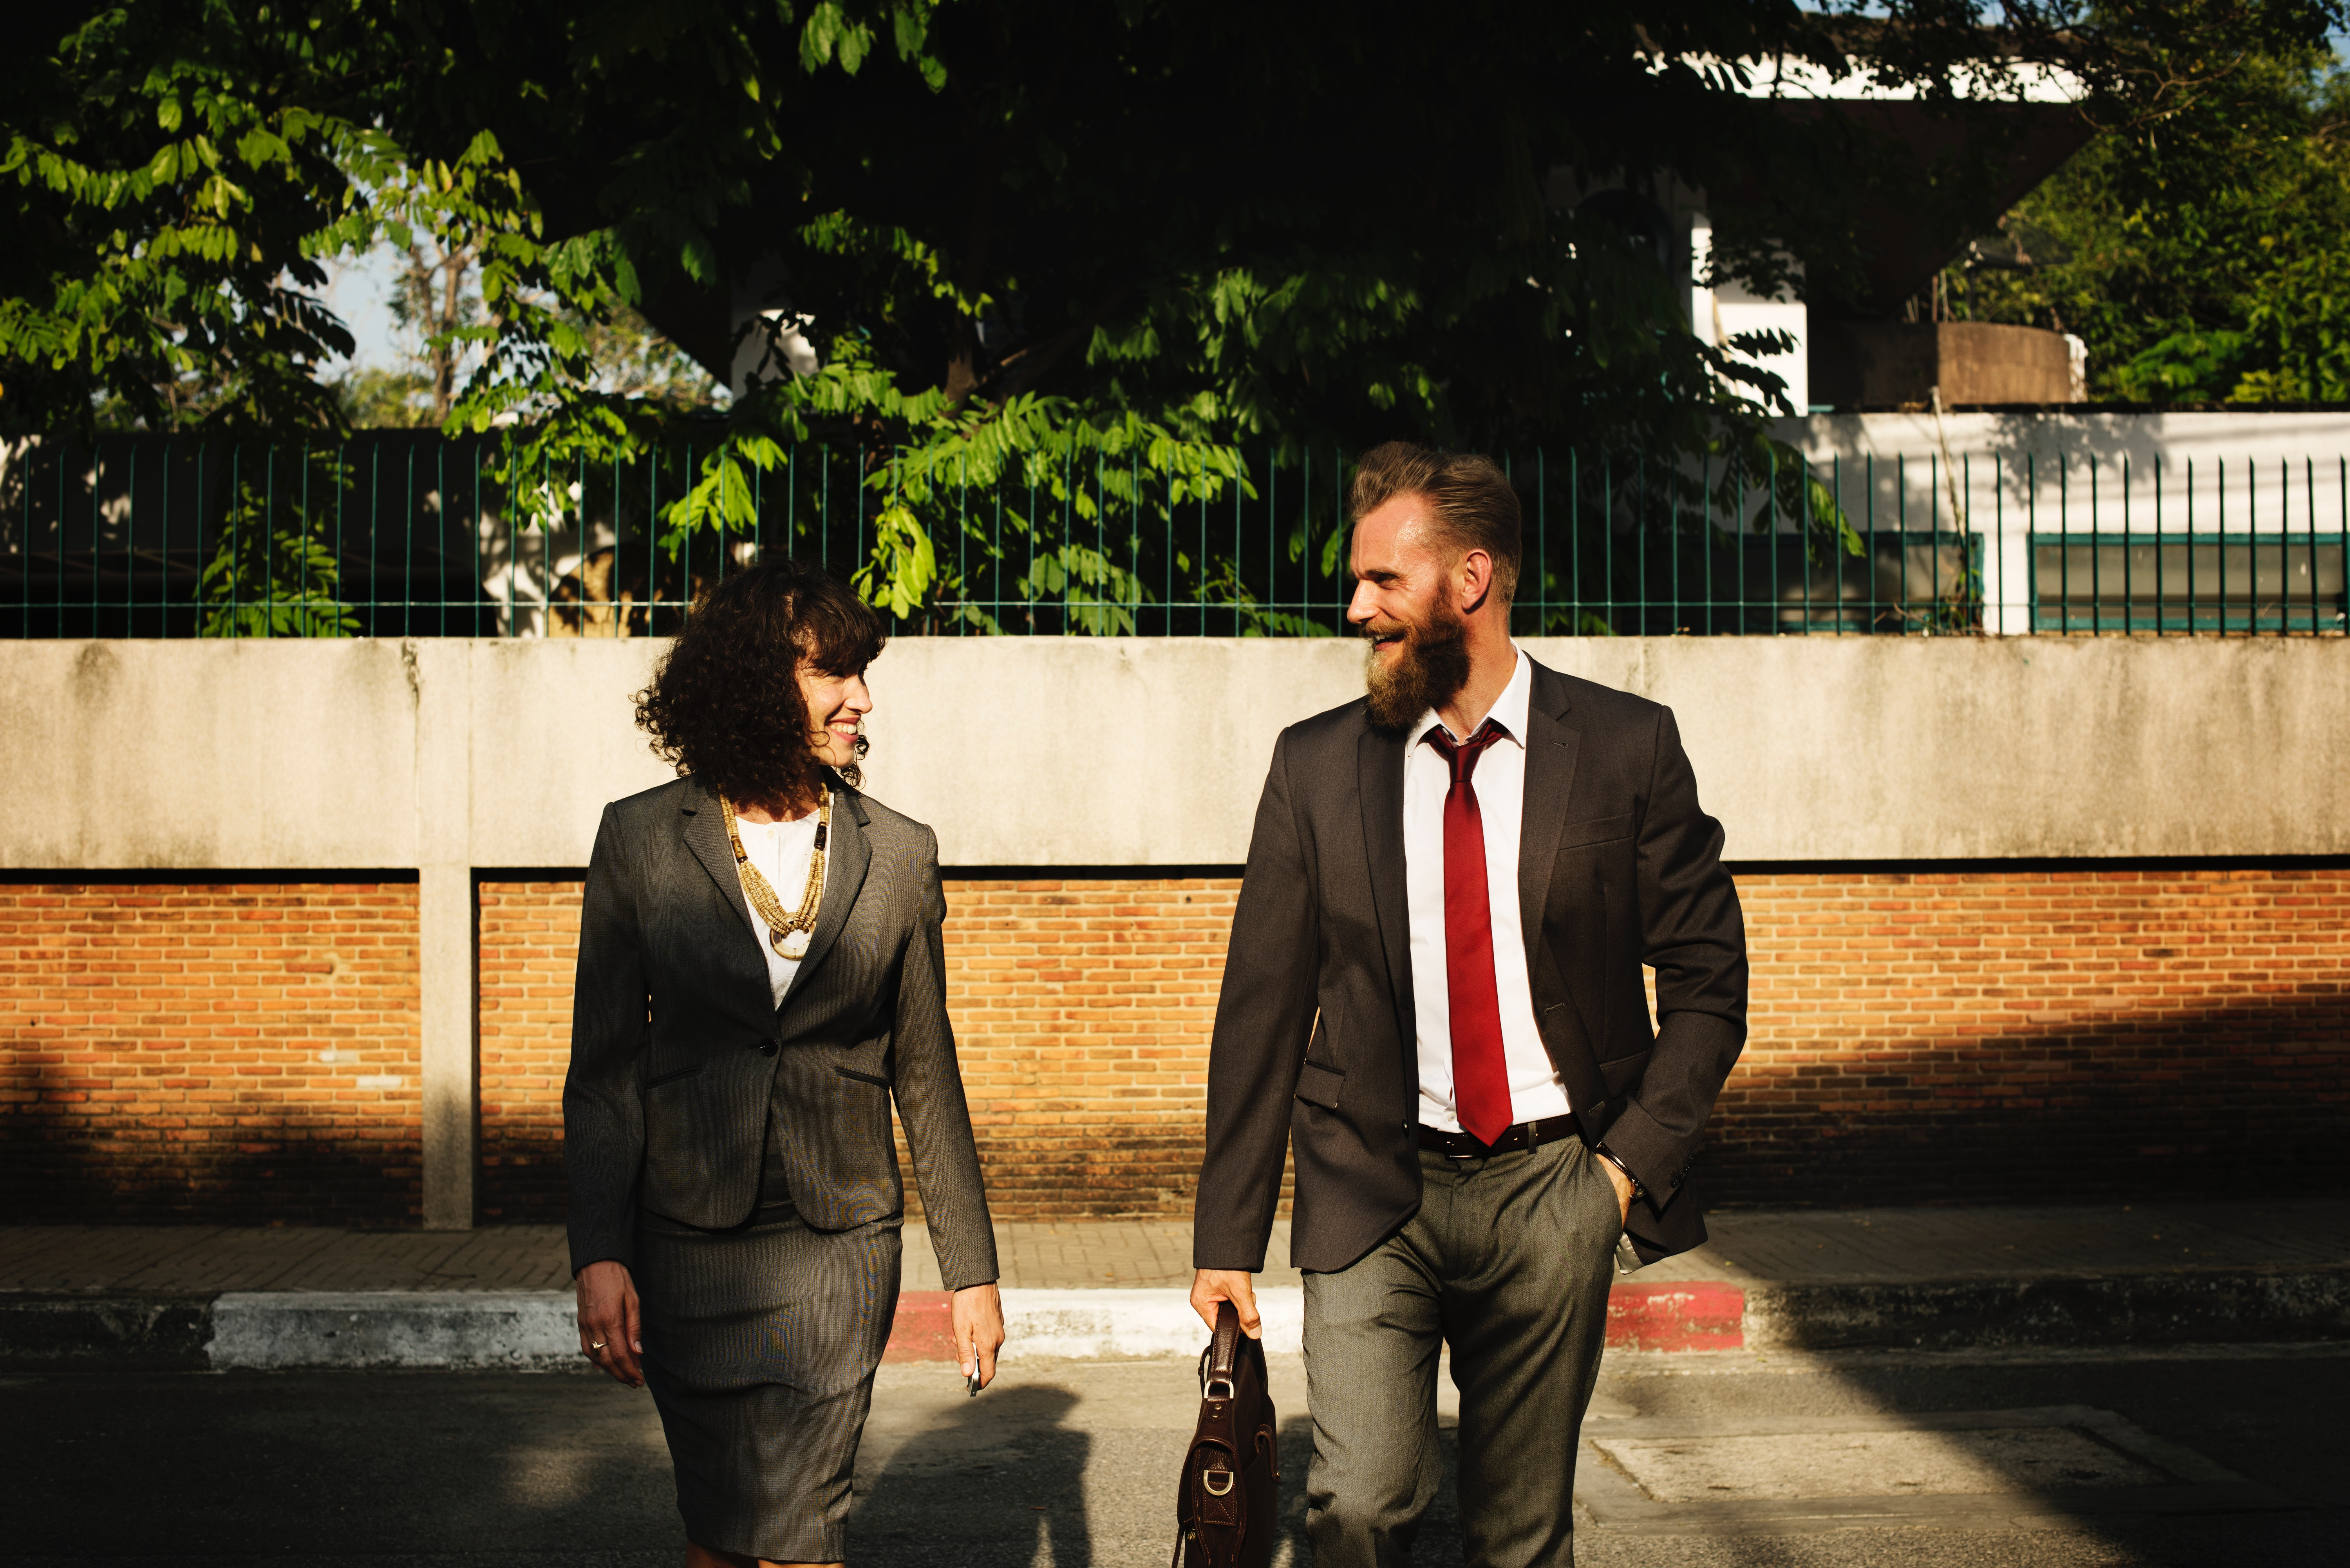 man and woman walking to work